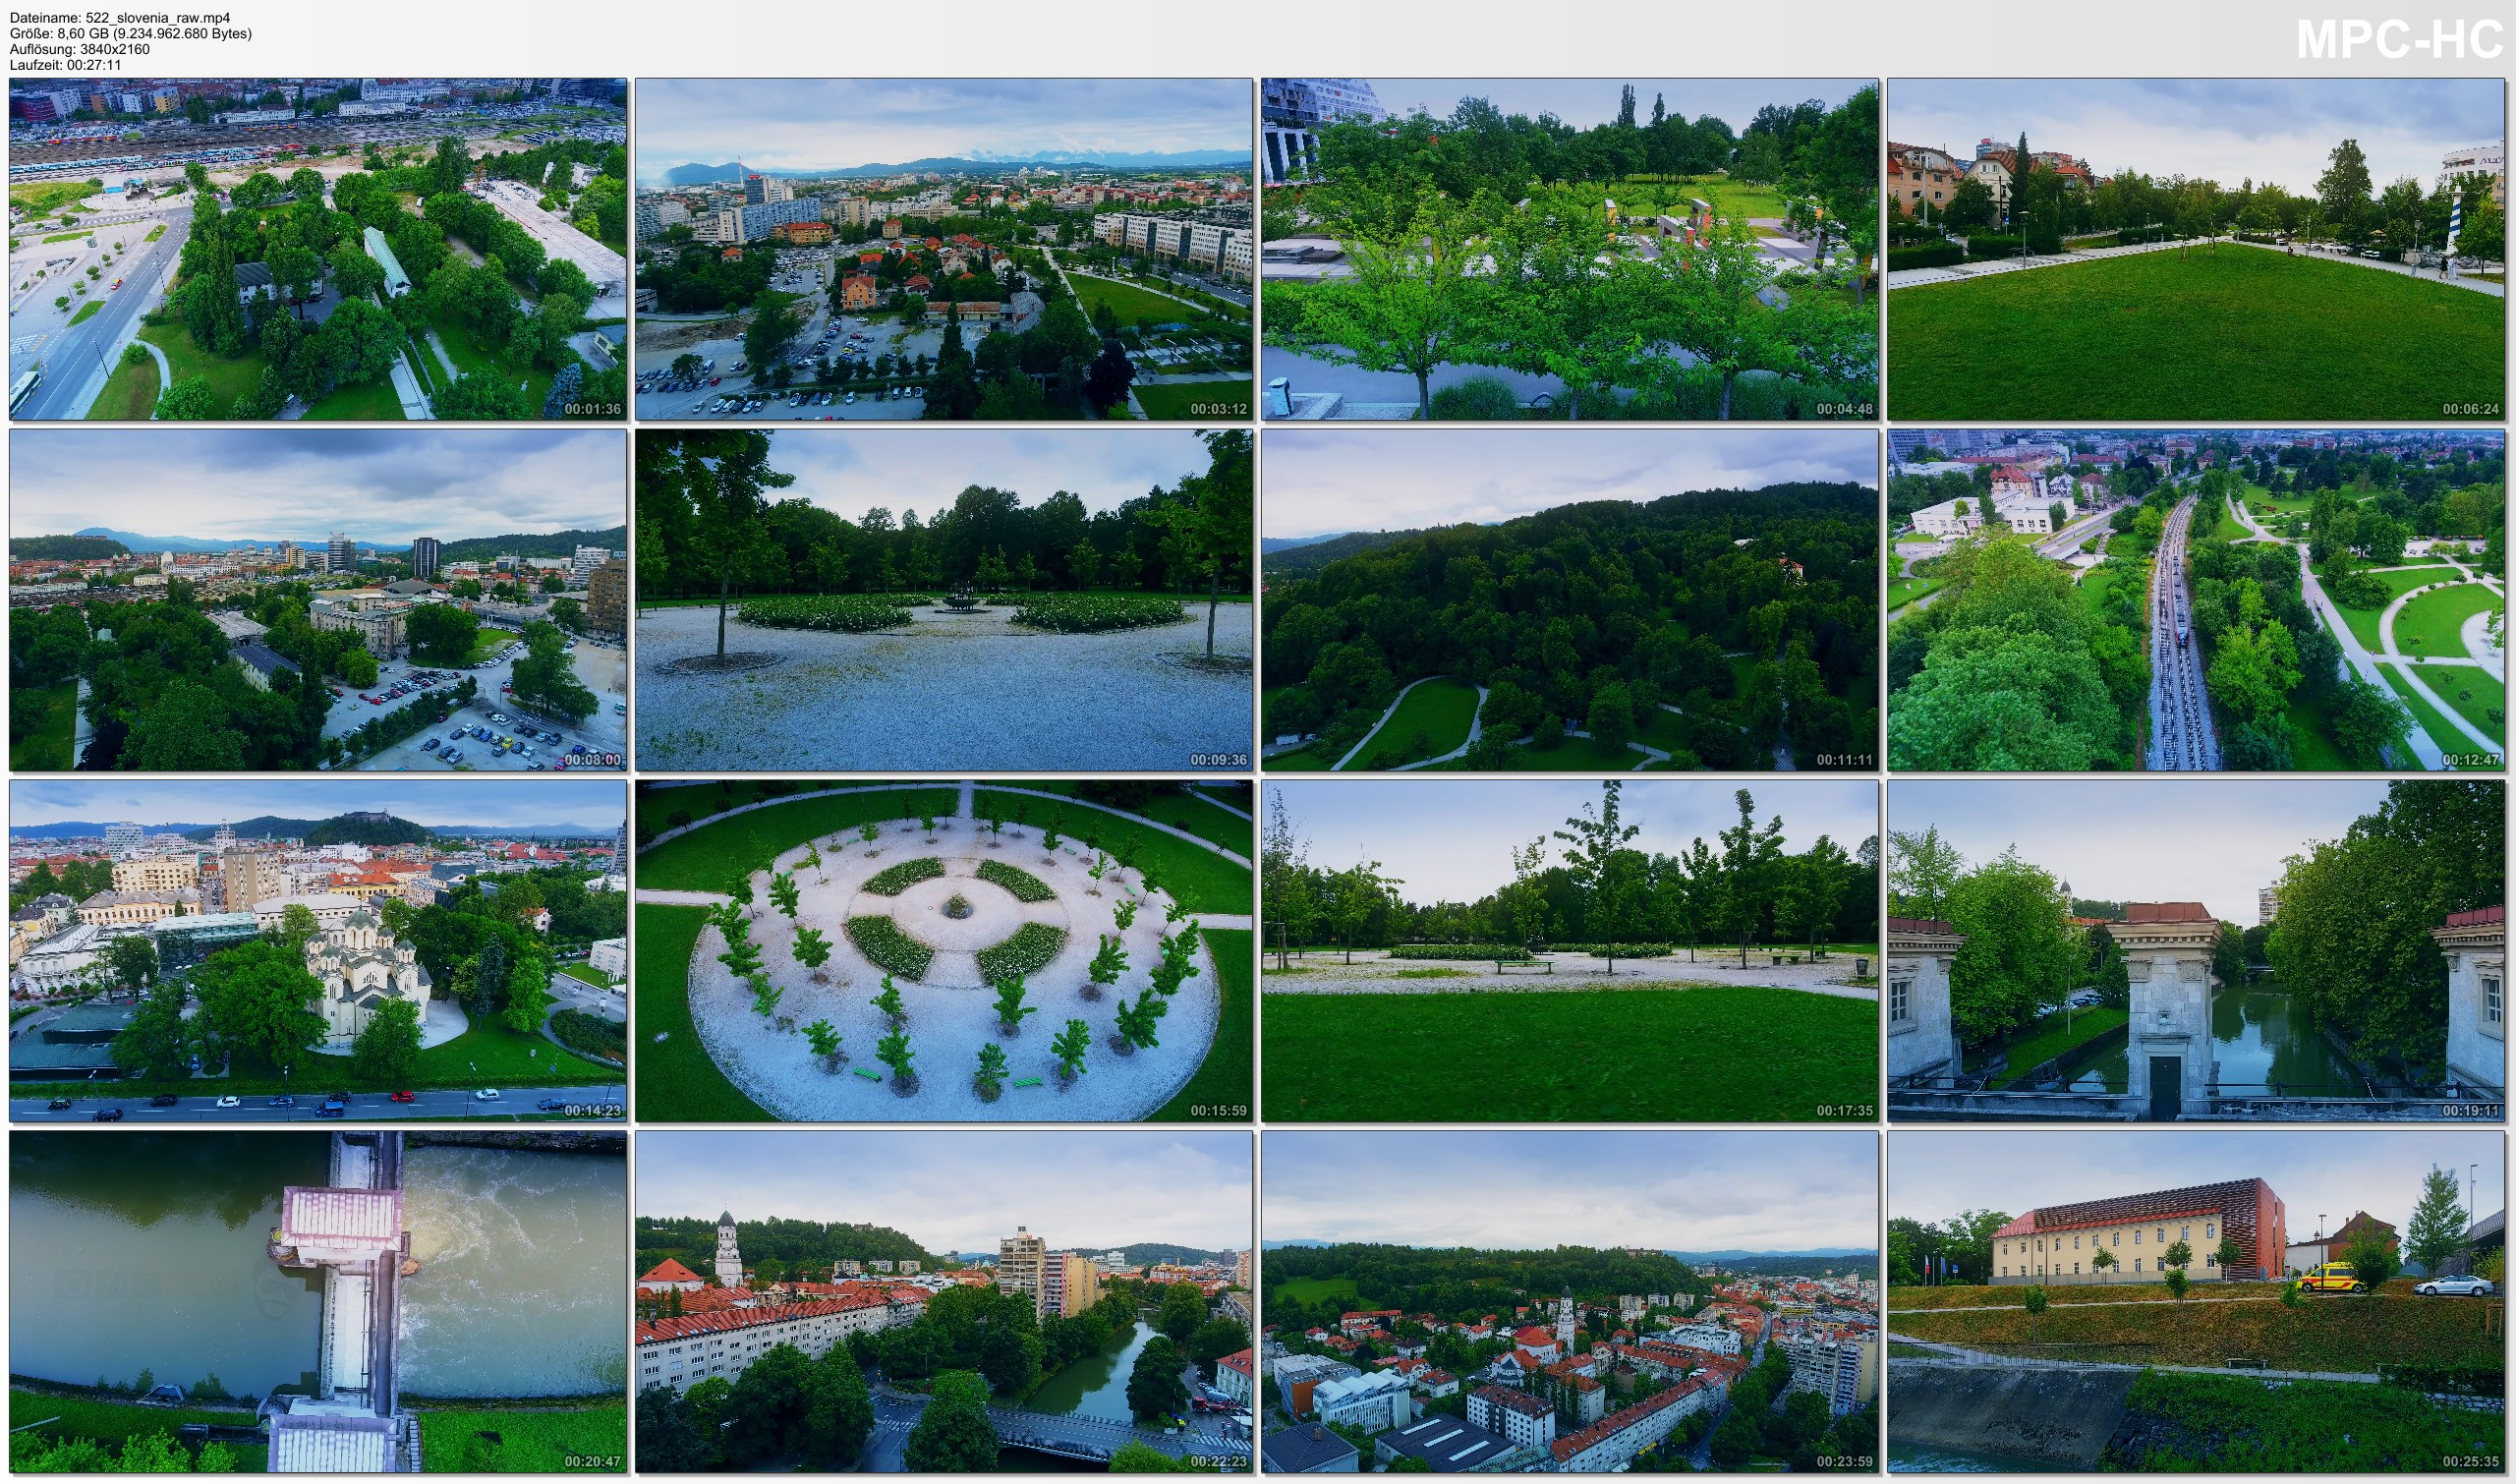 Drone Pictures from Video 【4K】Drone RAW Footage | This is SLOVENIA 2020 | Capital City Ljubljana | UltraHD Stock Video